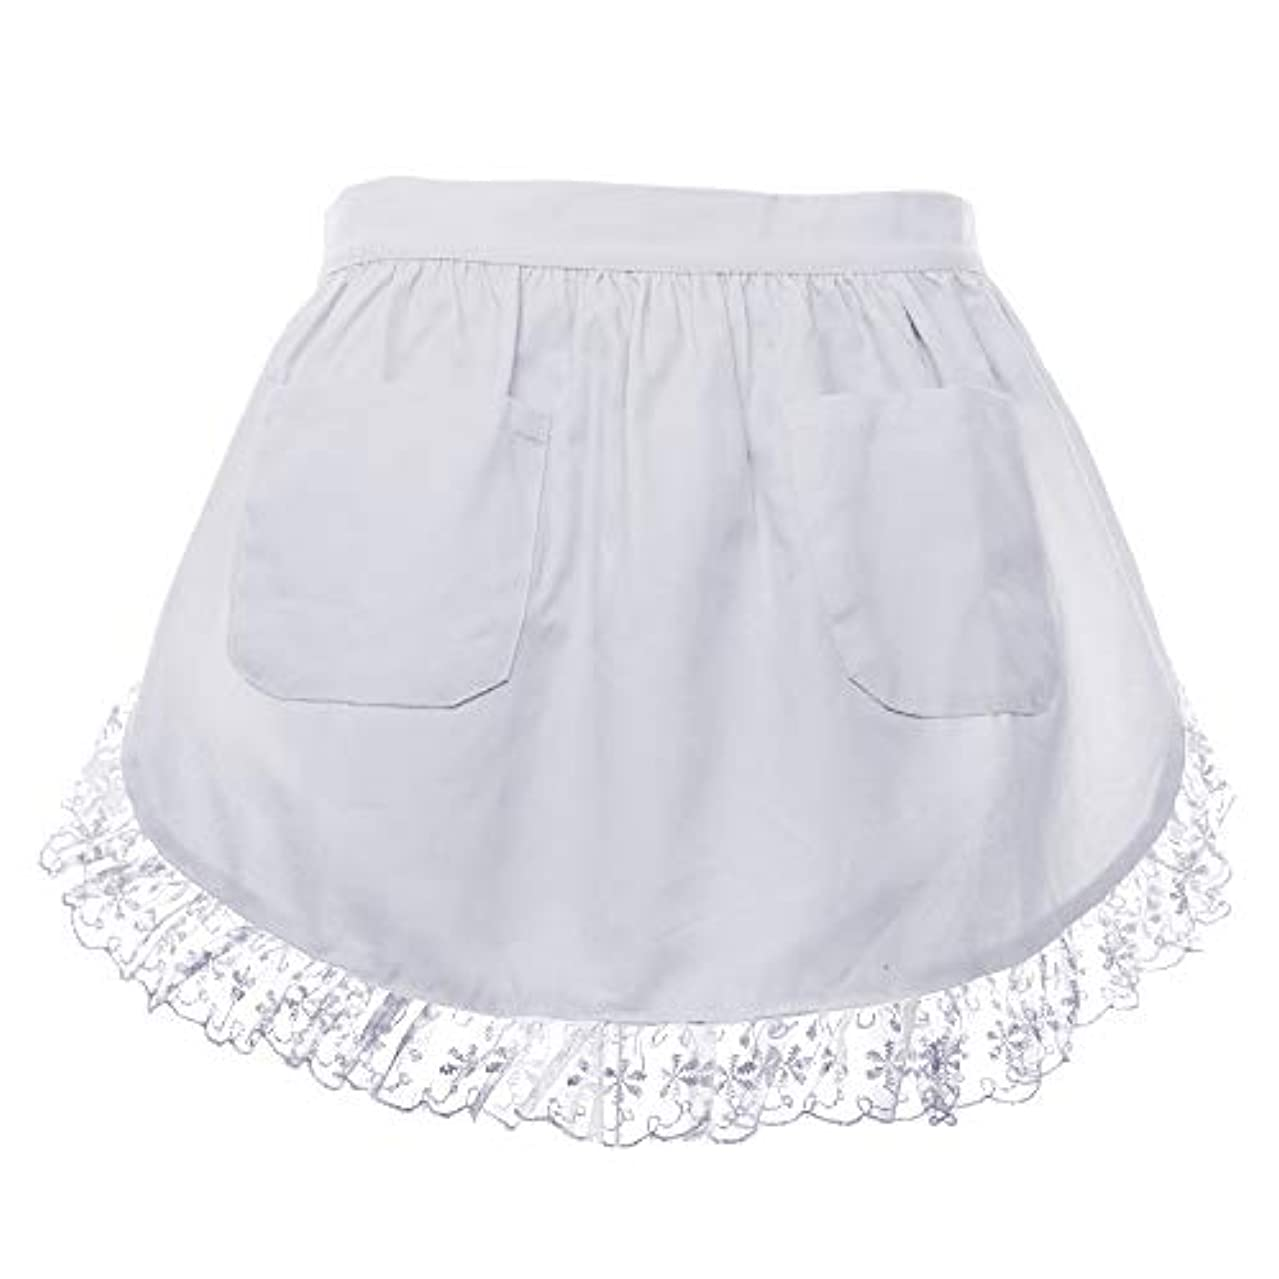 Aspire Waist Apron For Lady Lace Cotton Kitchen Half Apron With Two Pockets Maid Costume